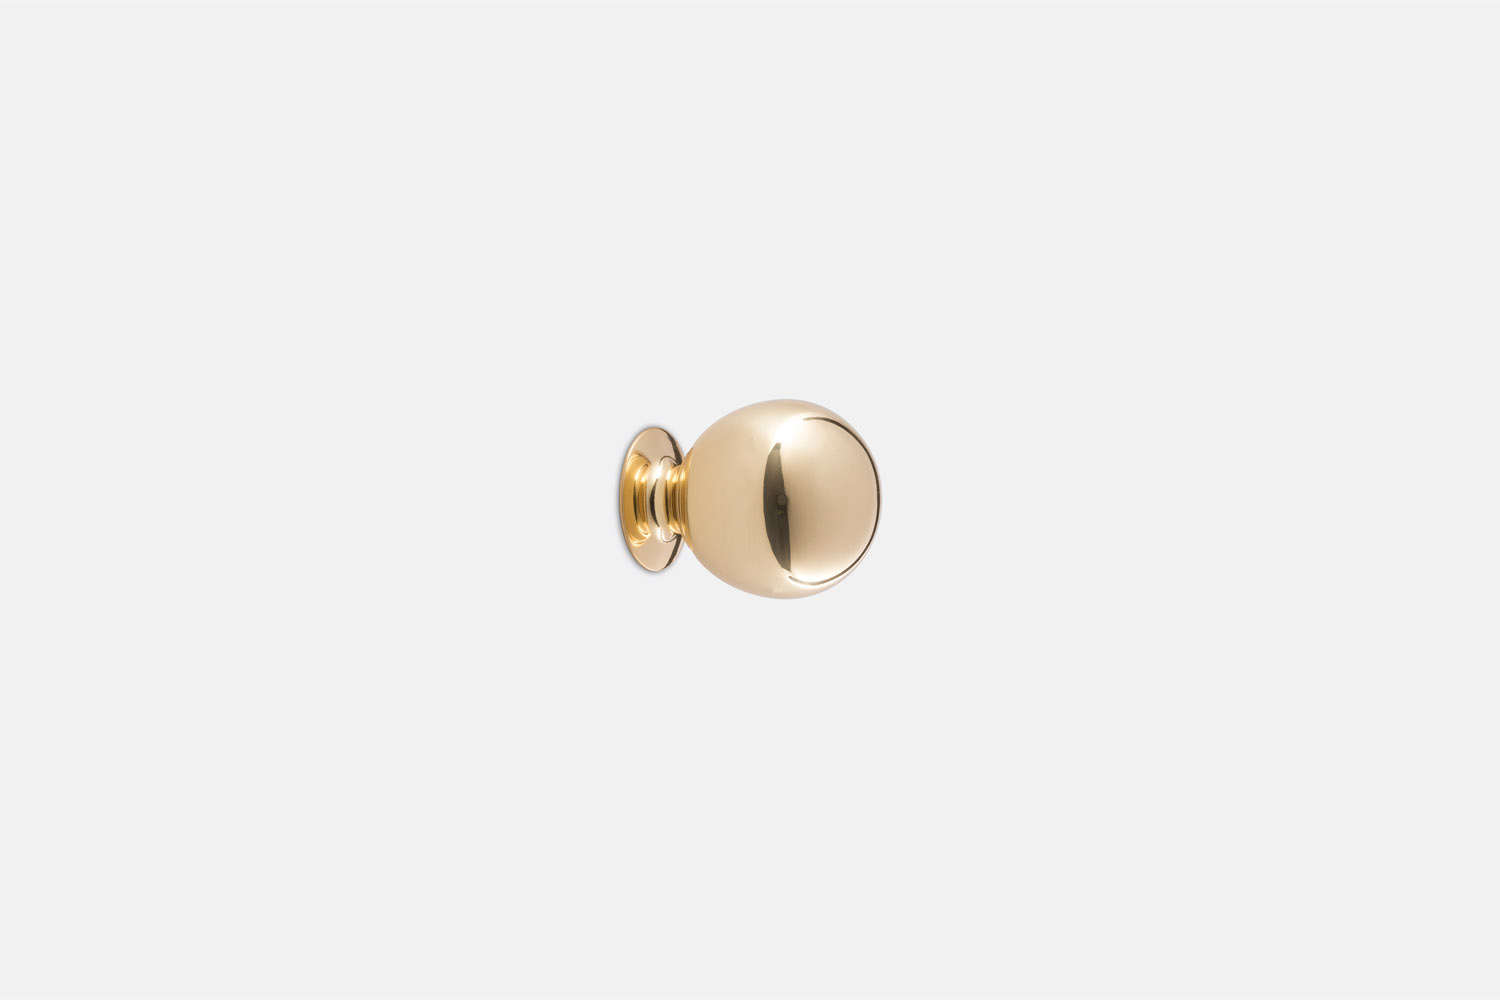 The Ball Cabinet Knob in unlacquered brass is $loading=